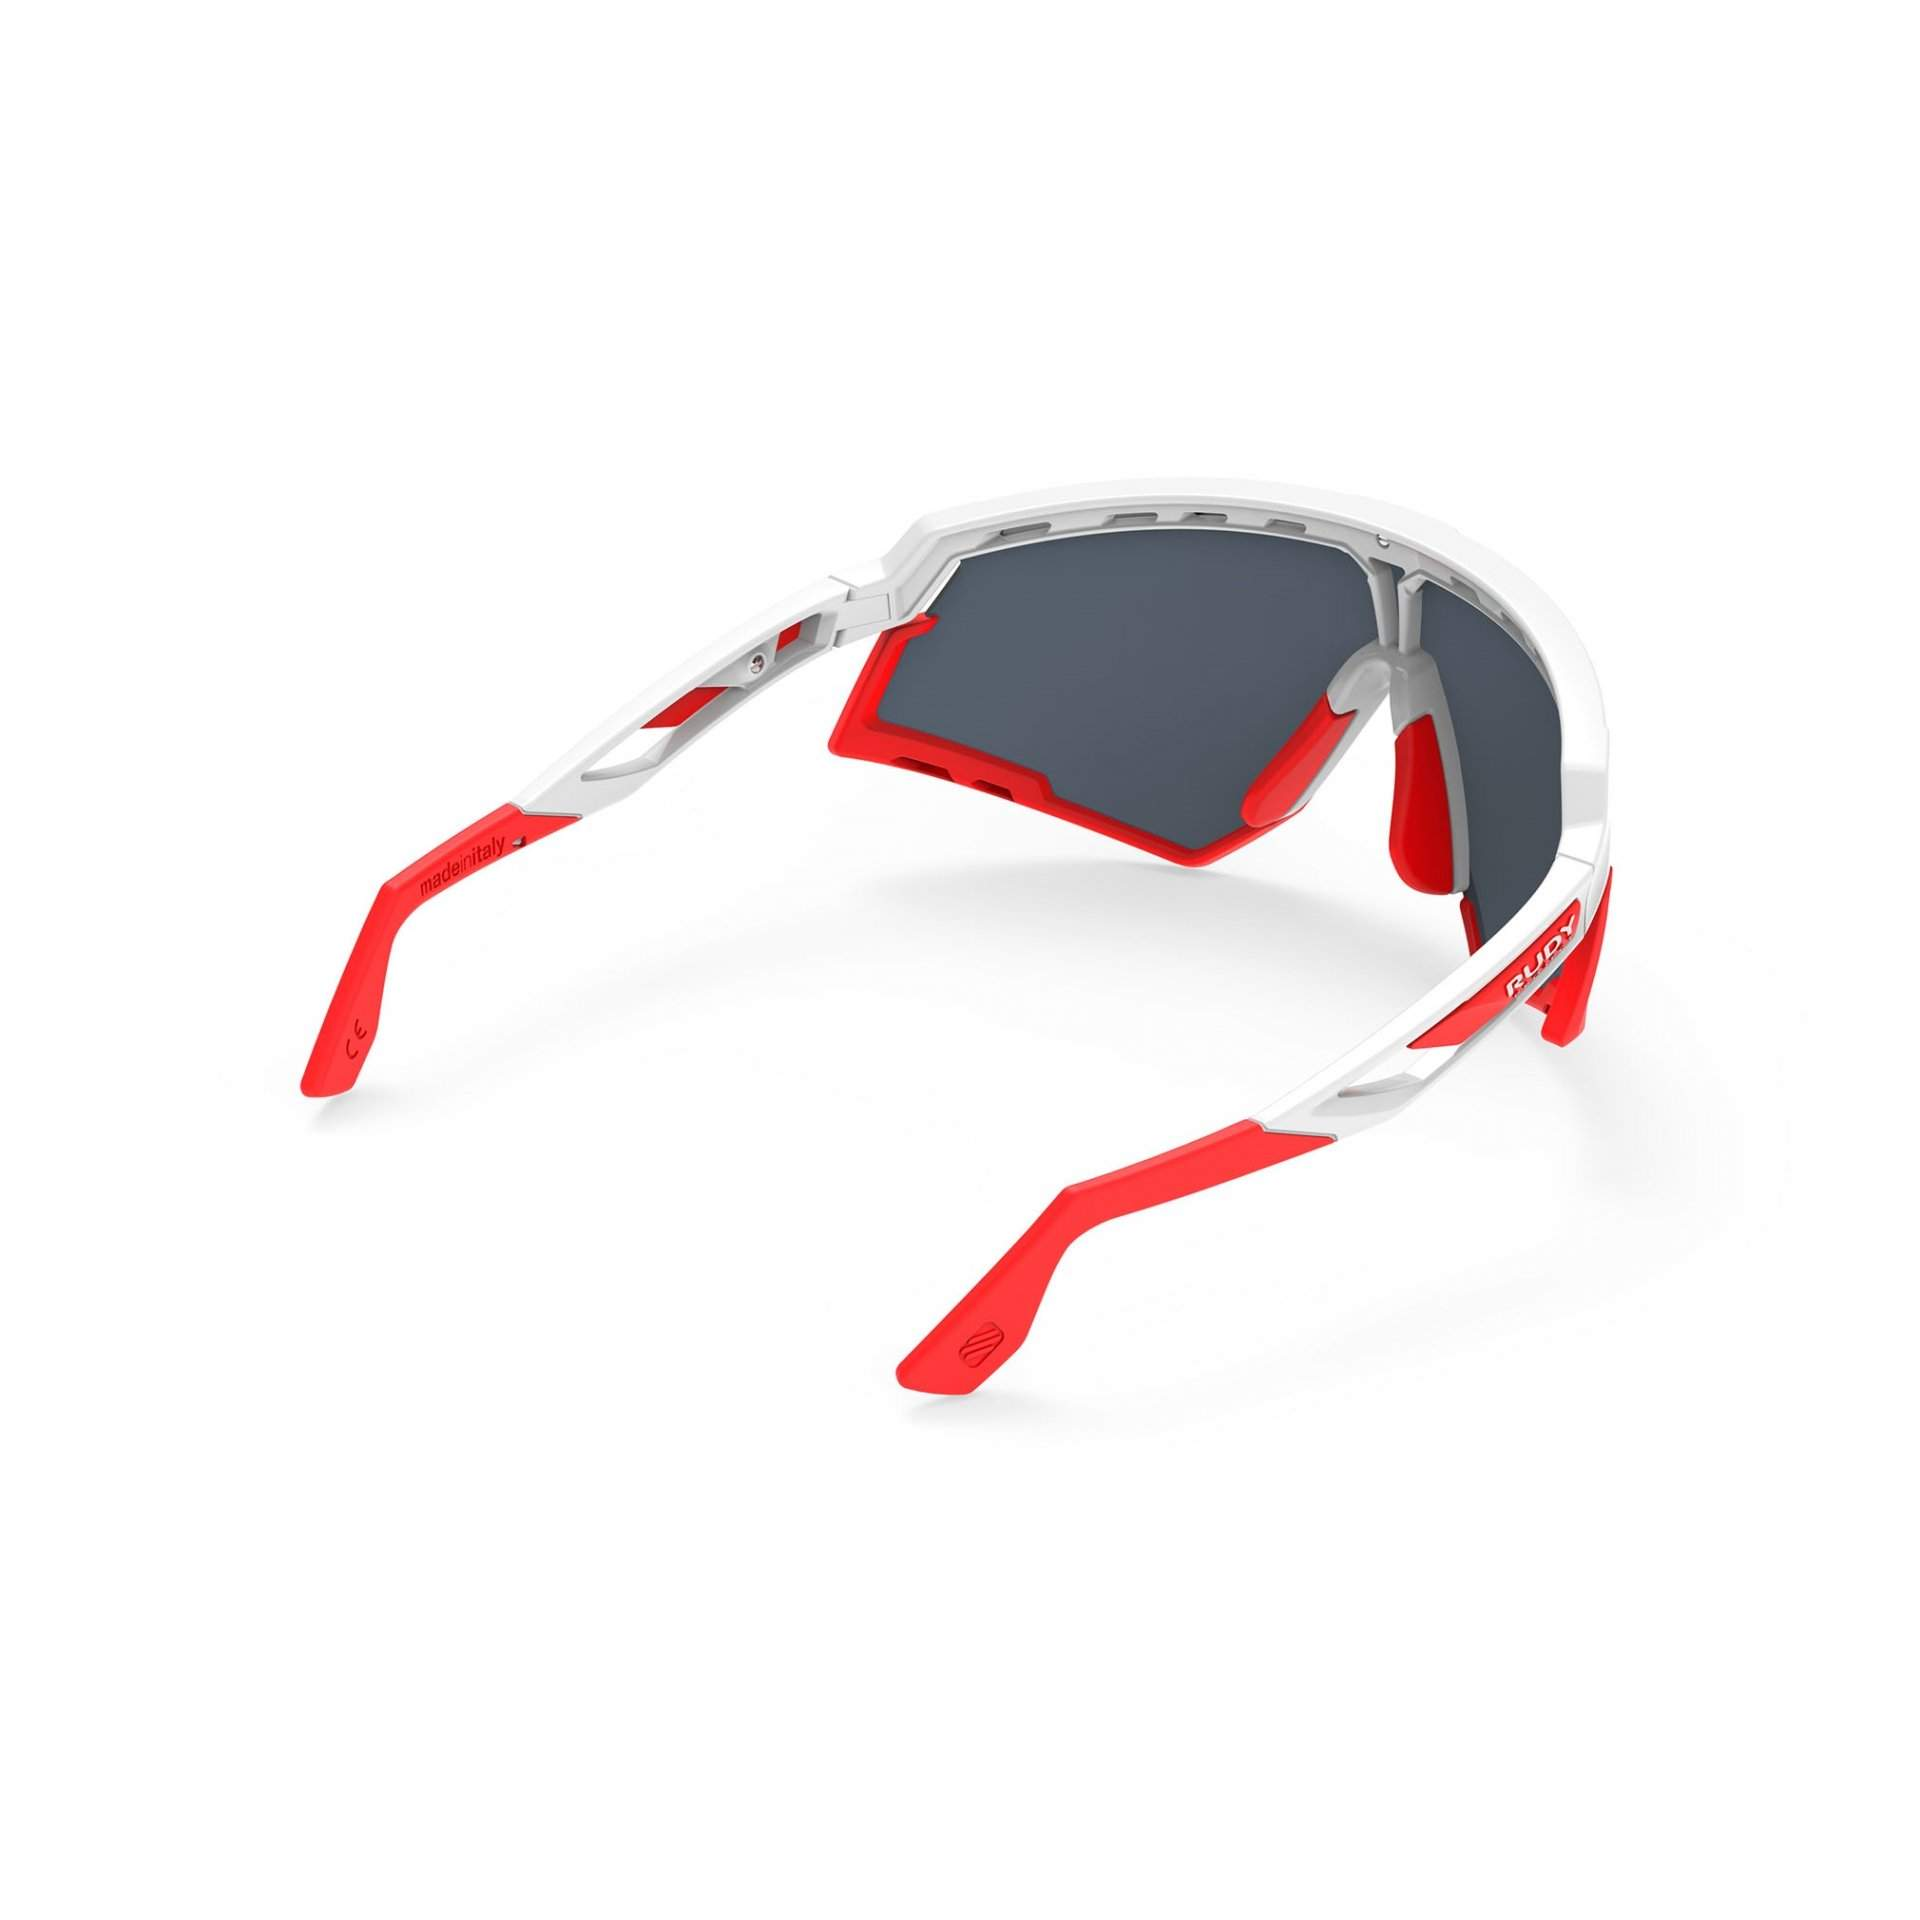 OKULARY RUDY PROJECT DEFENDER MULTILASER RED + WHITE GLOSS|BUMPRES RED FLUO SP5238690000 Z TYŁU